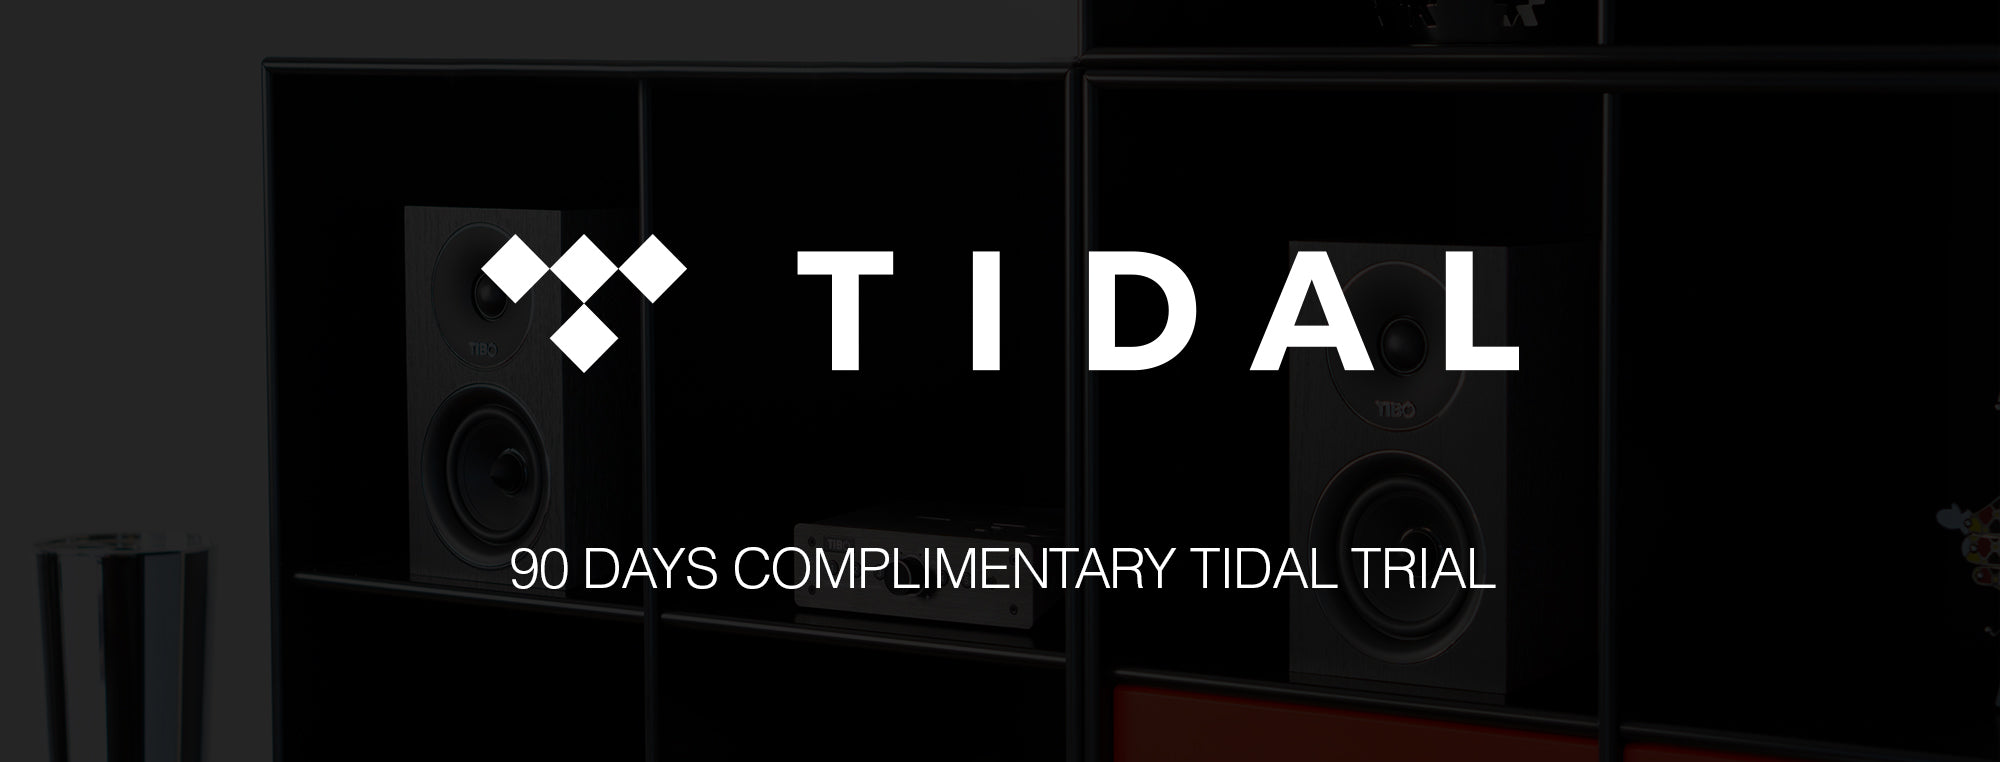 90 DAYS COMPLIMENTARY TIDAL TRIAL